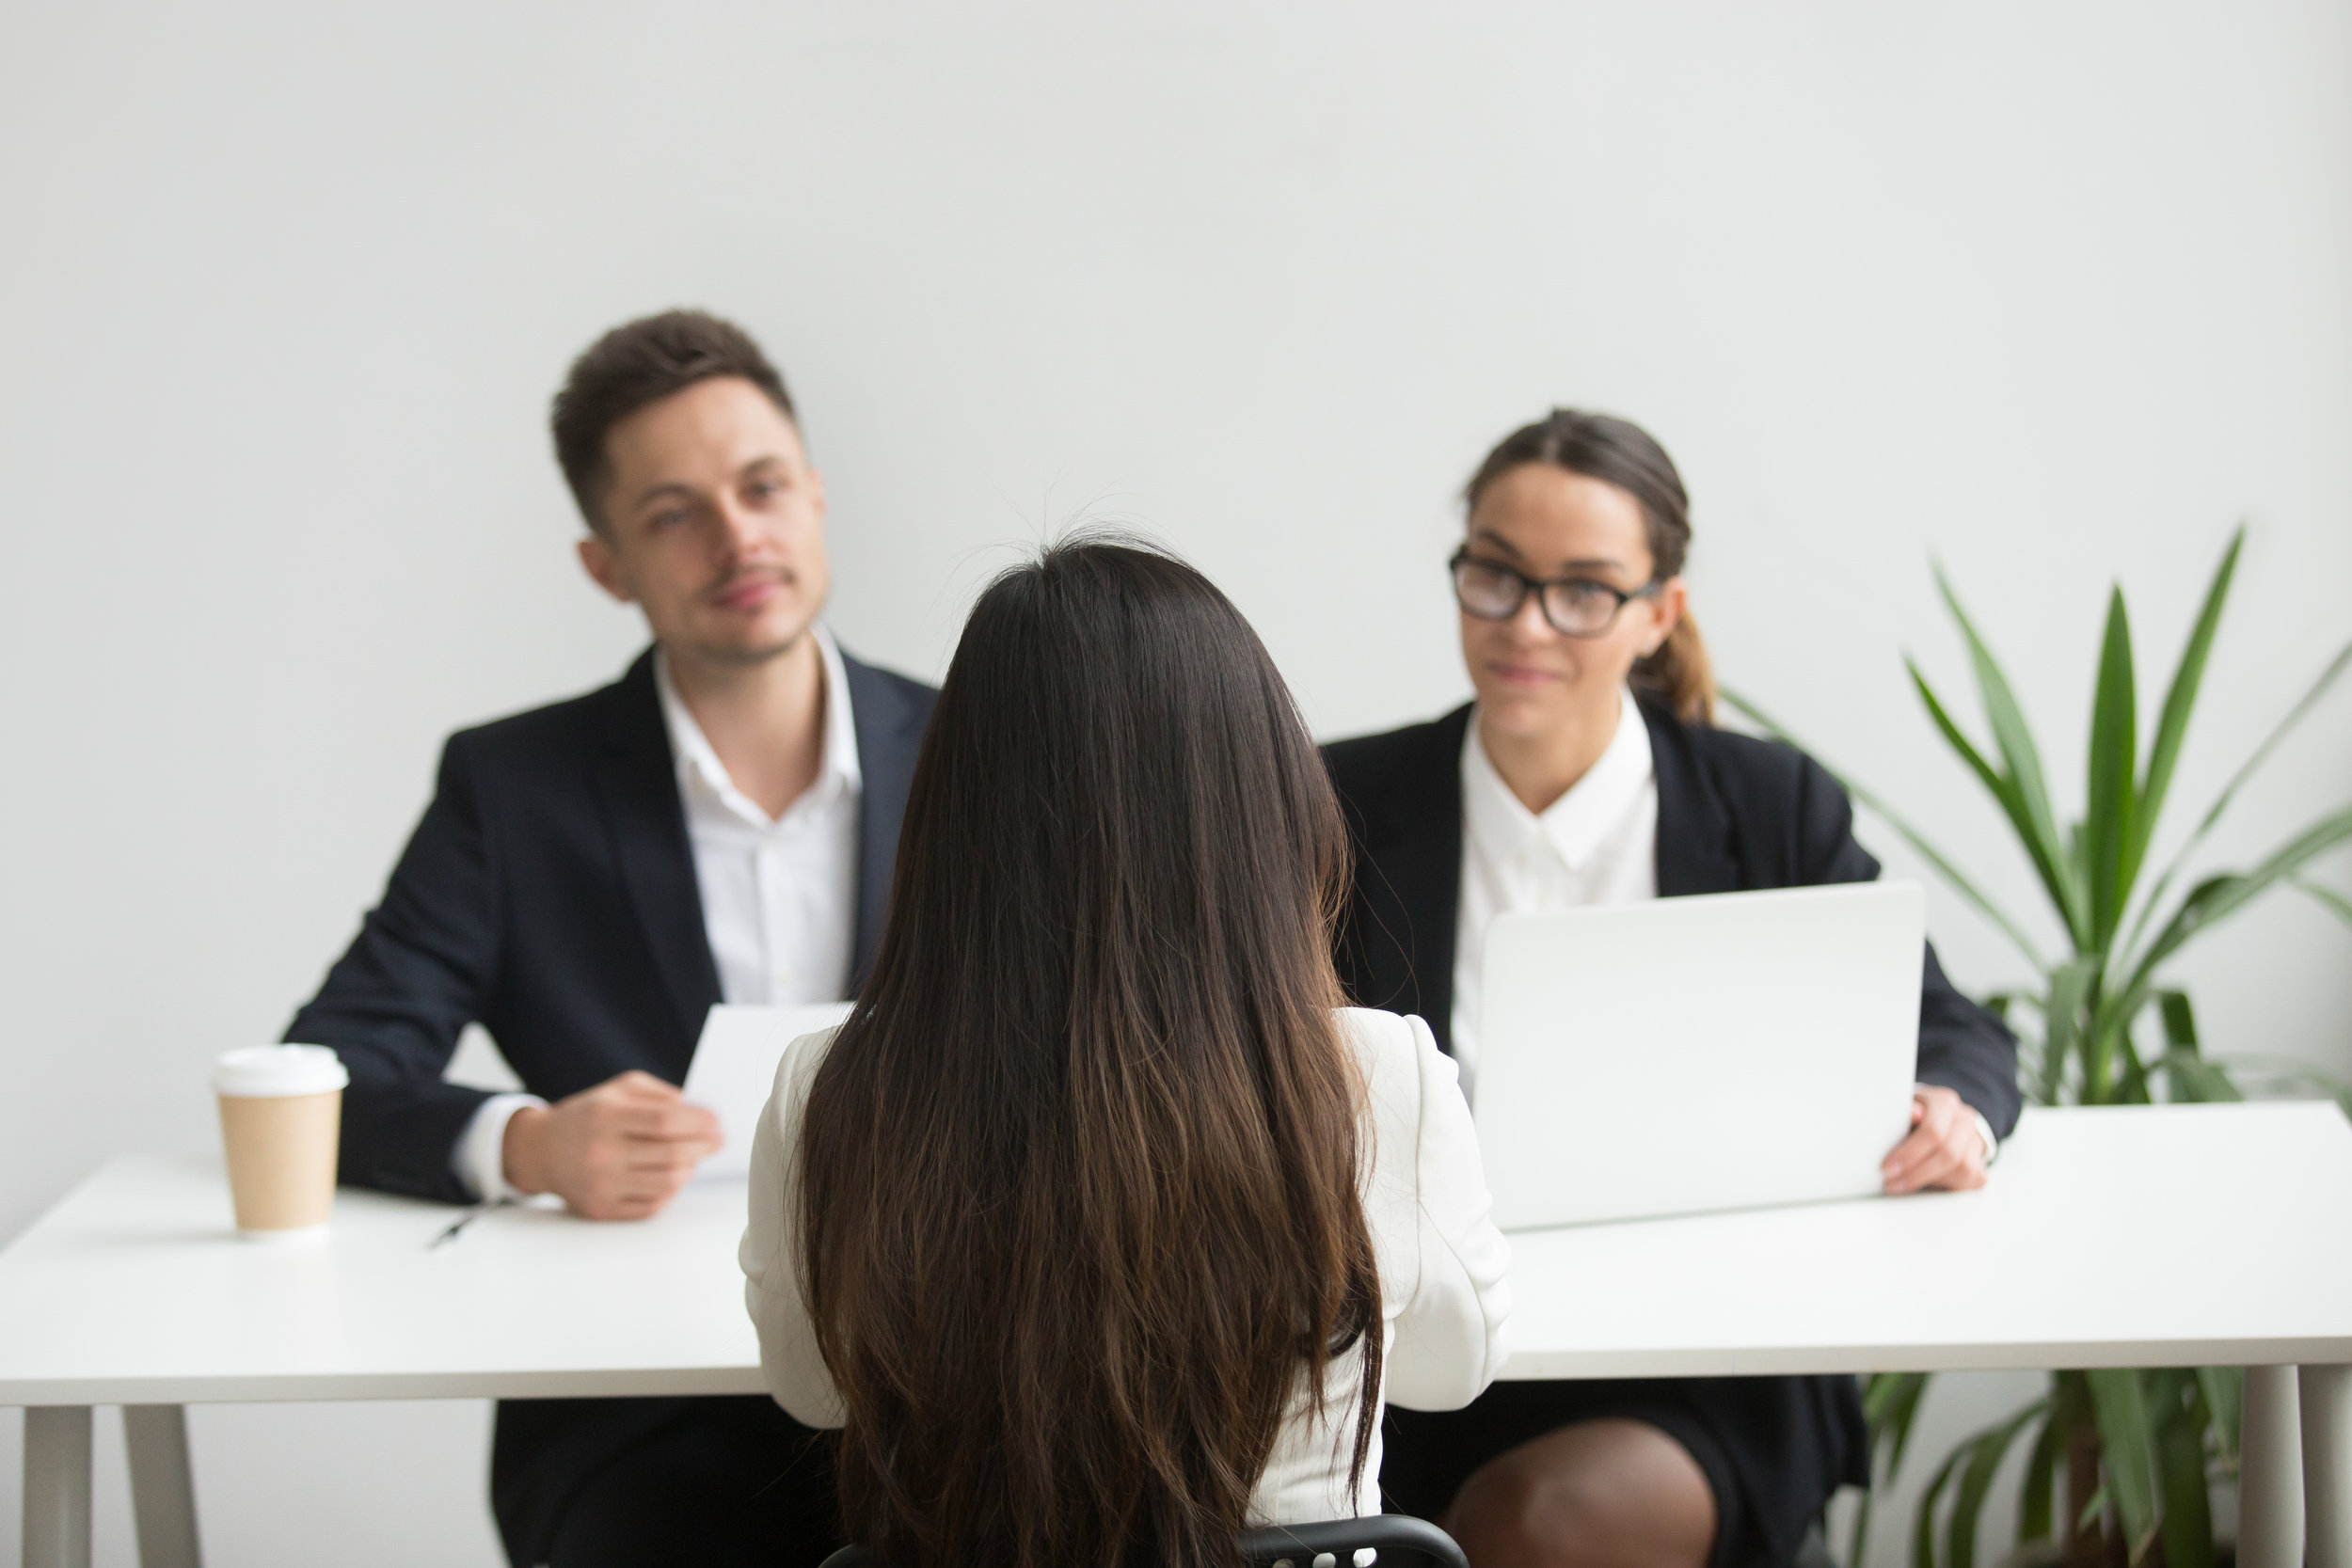 Image description: A women is seated in front of a desk being interviewed by two executives, one female and one male. Photo source:  Yanalya/Freepik